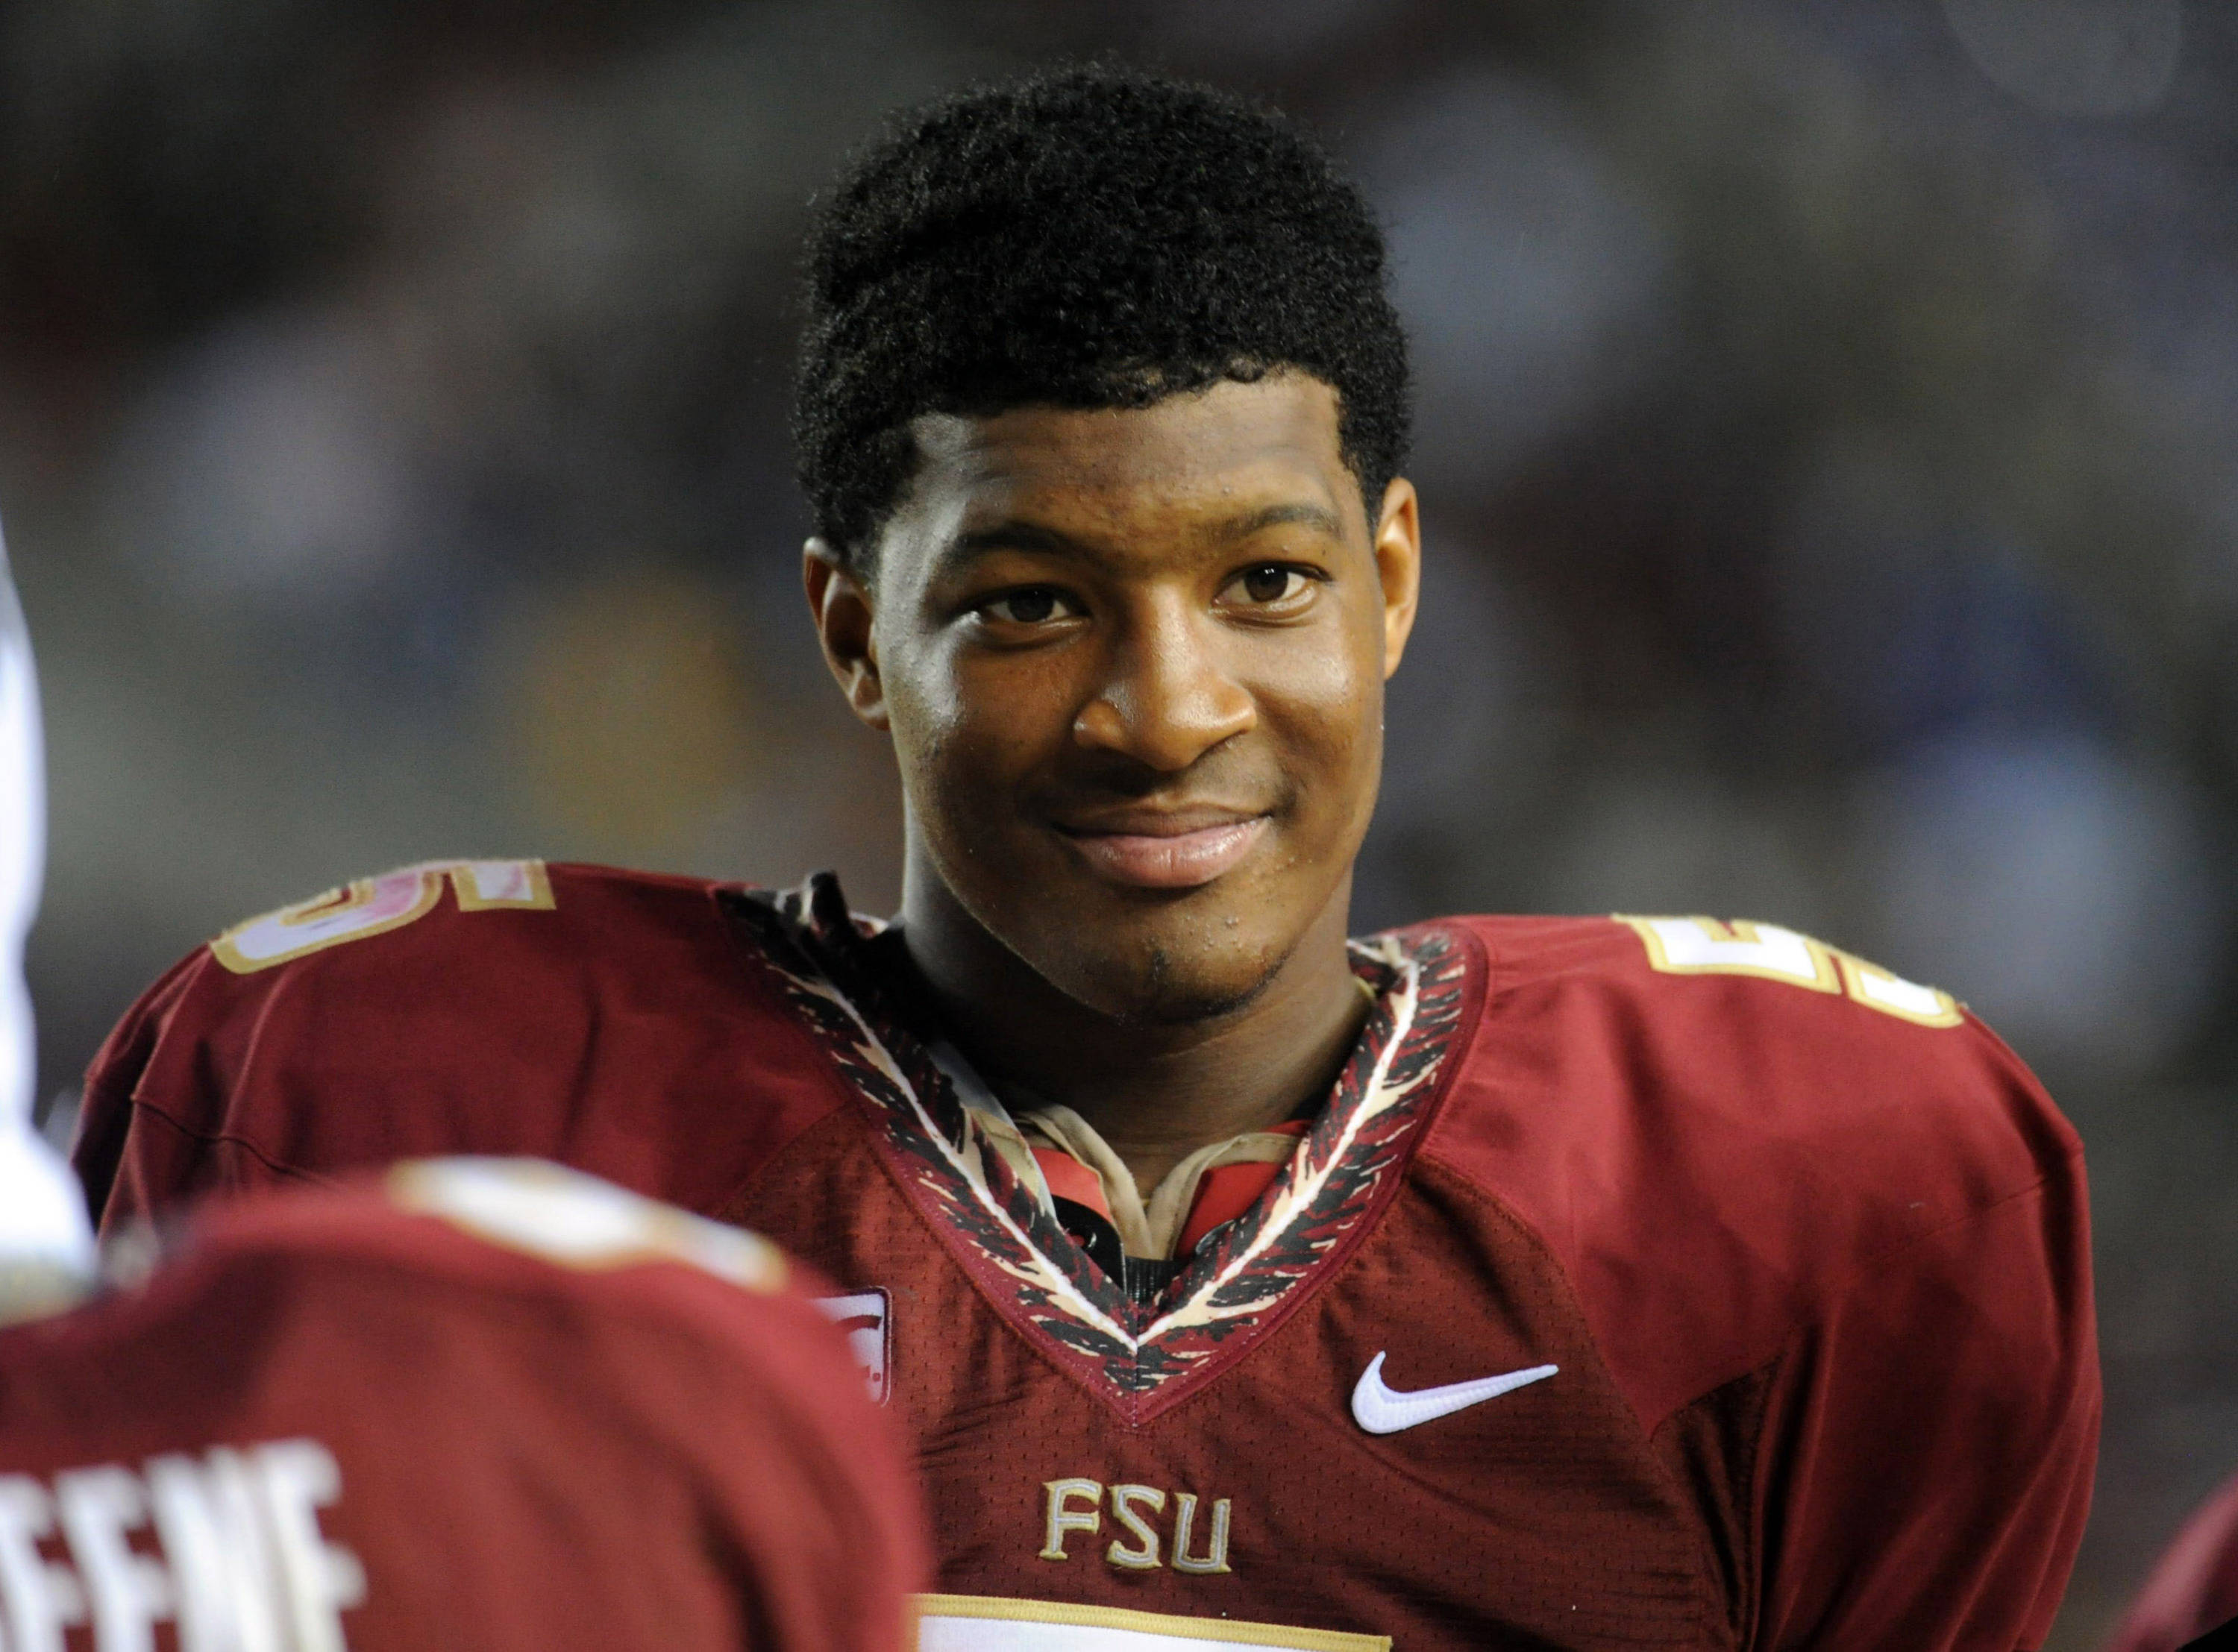 Florida State Seminoles quarterback Jameis Winston (5) on the sidelines during the second half of the game against the Bethune-Cookman Wildcats. (Melina Vastola-USA TODAY Sports)